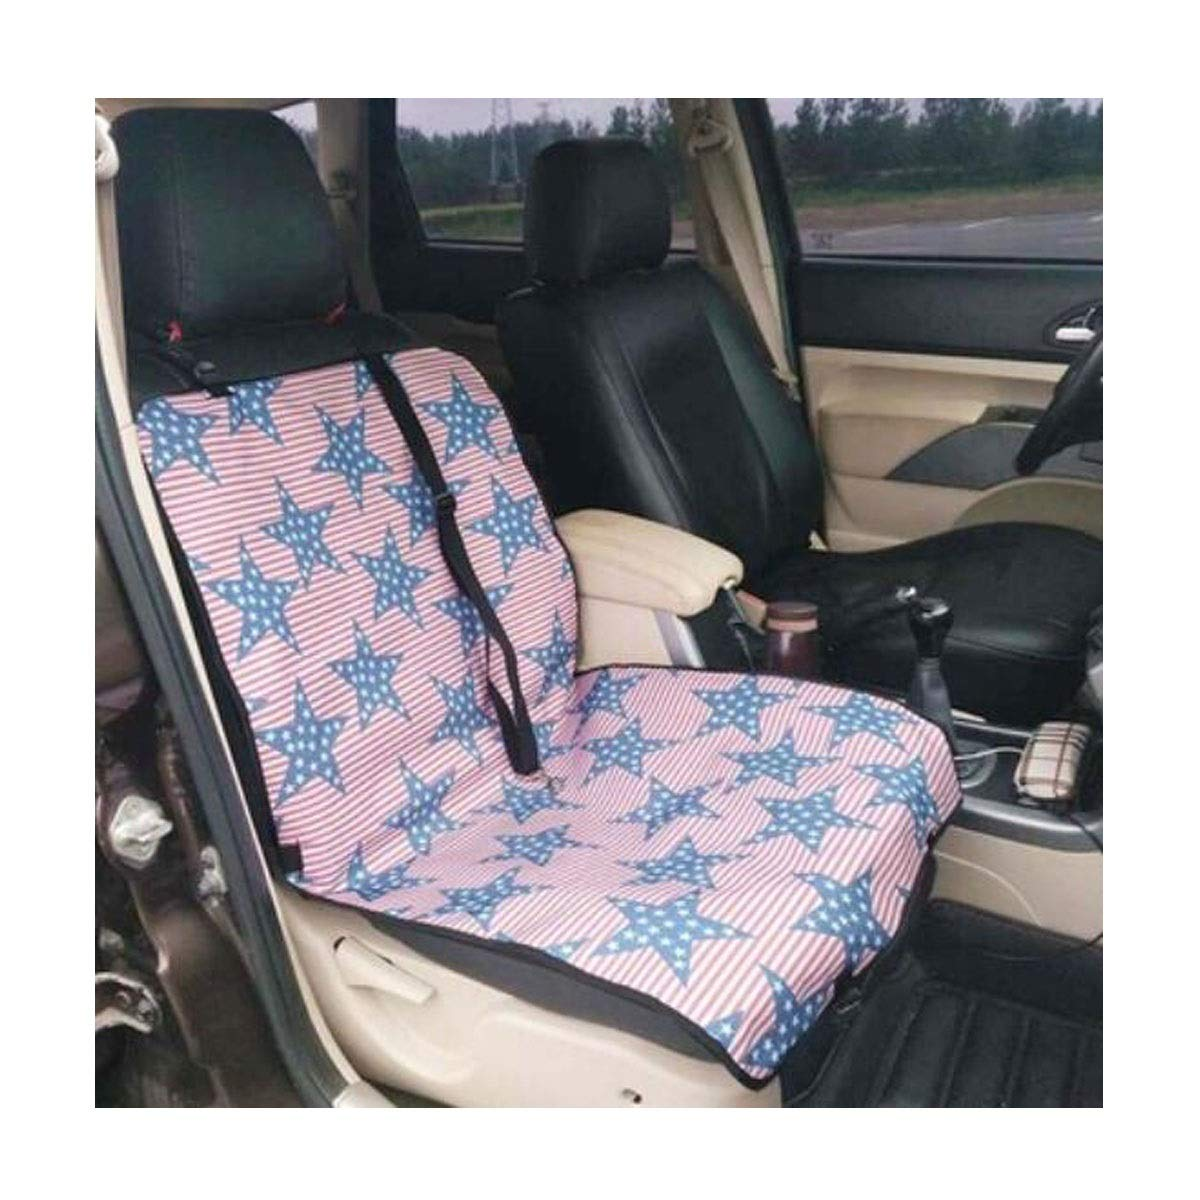 bluee star Dog Car Seat Cover, Dog Artifact Booster Seat Car Co-Pilot Anti-Dirty Safety Single Seat Cover Bed Non-Slip Waterproof, Brown, Camouflage (color   bluee Star)